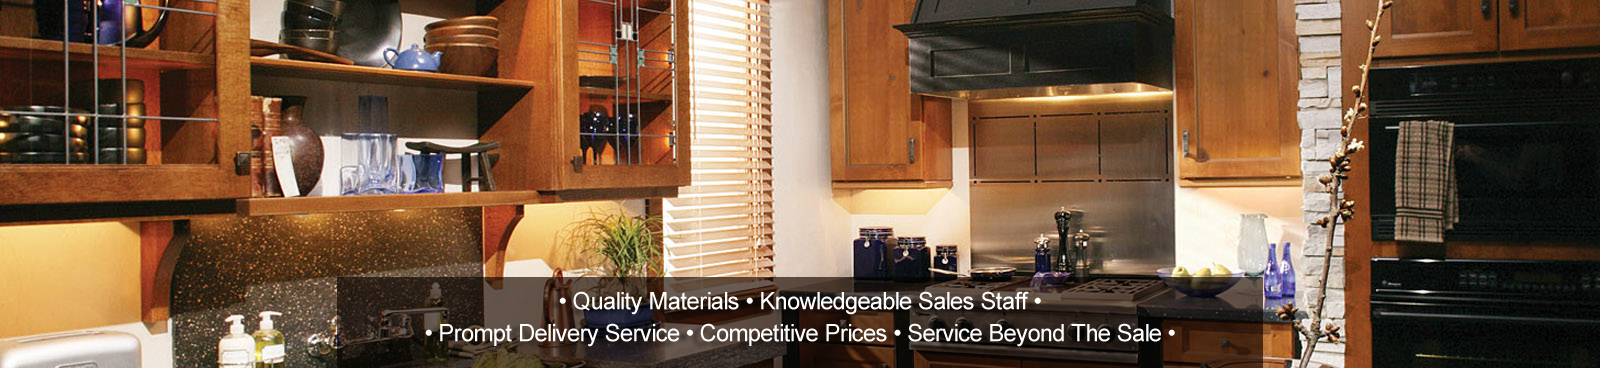 Quality Matl's, Knowledgeable Staff, Prompt Deliv, Compet Prices, Svc Beyond the Sale